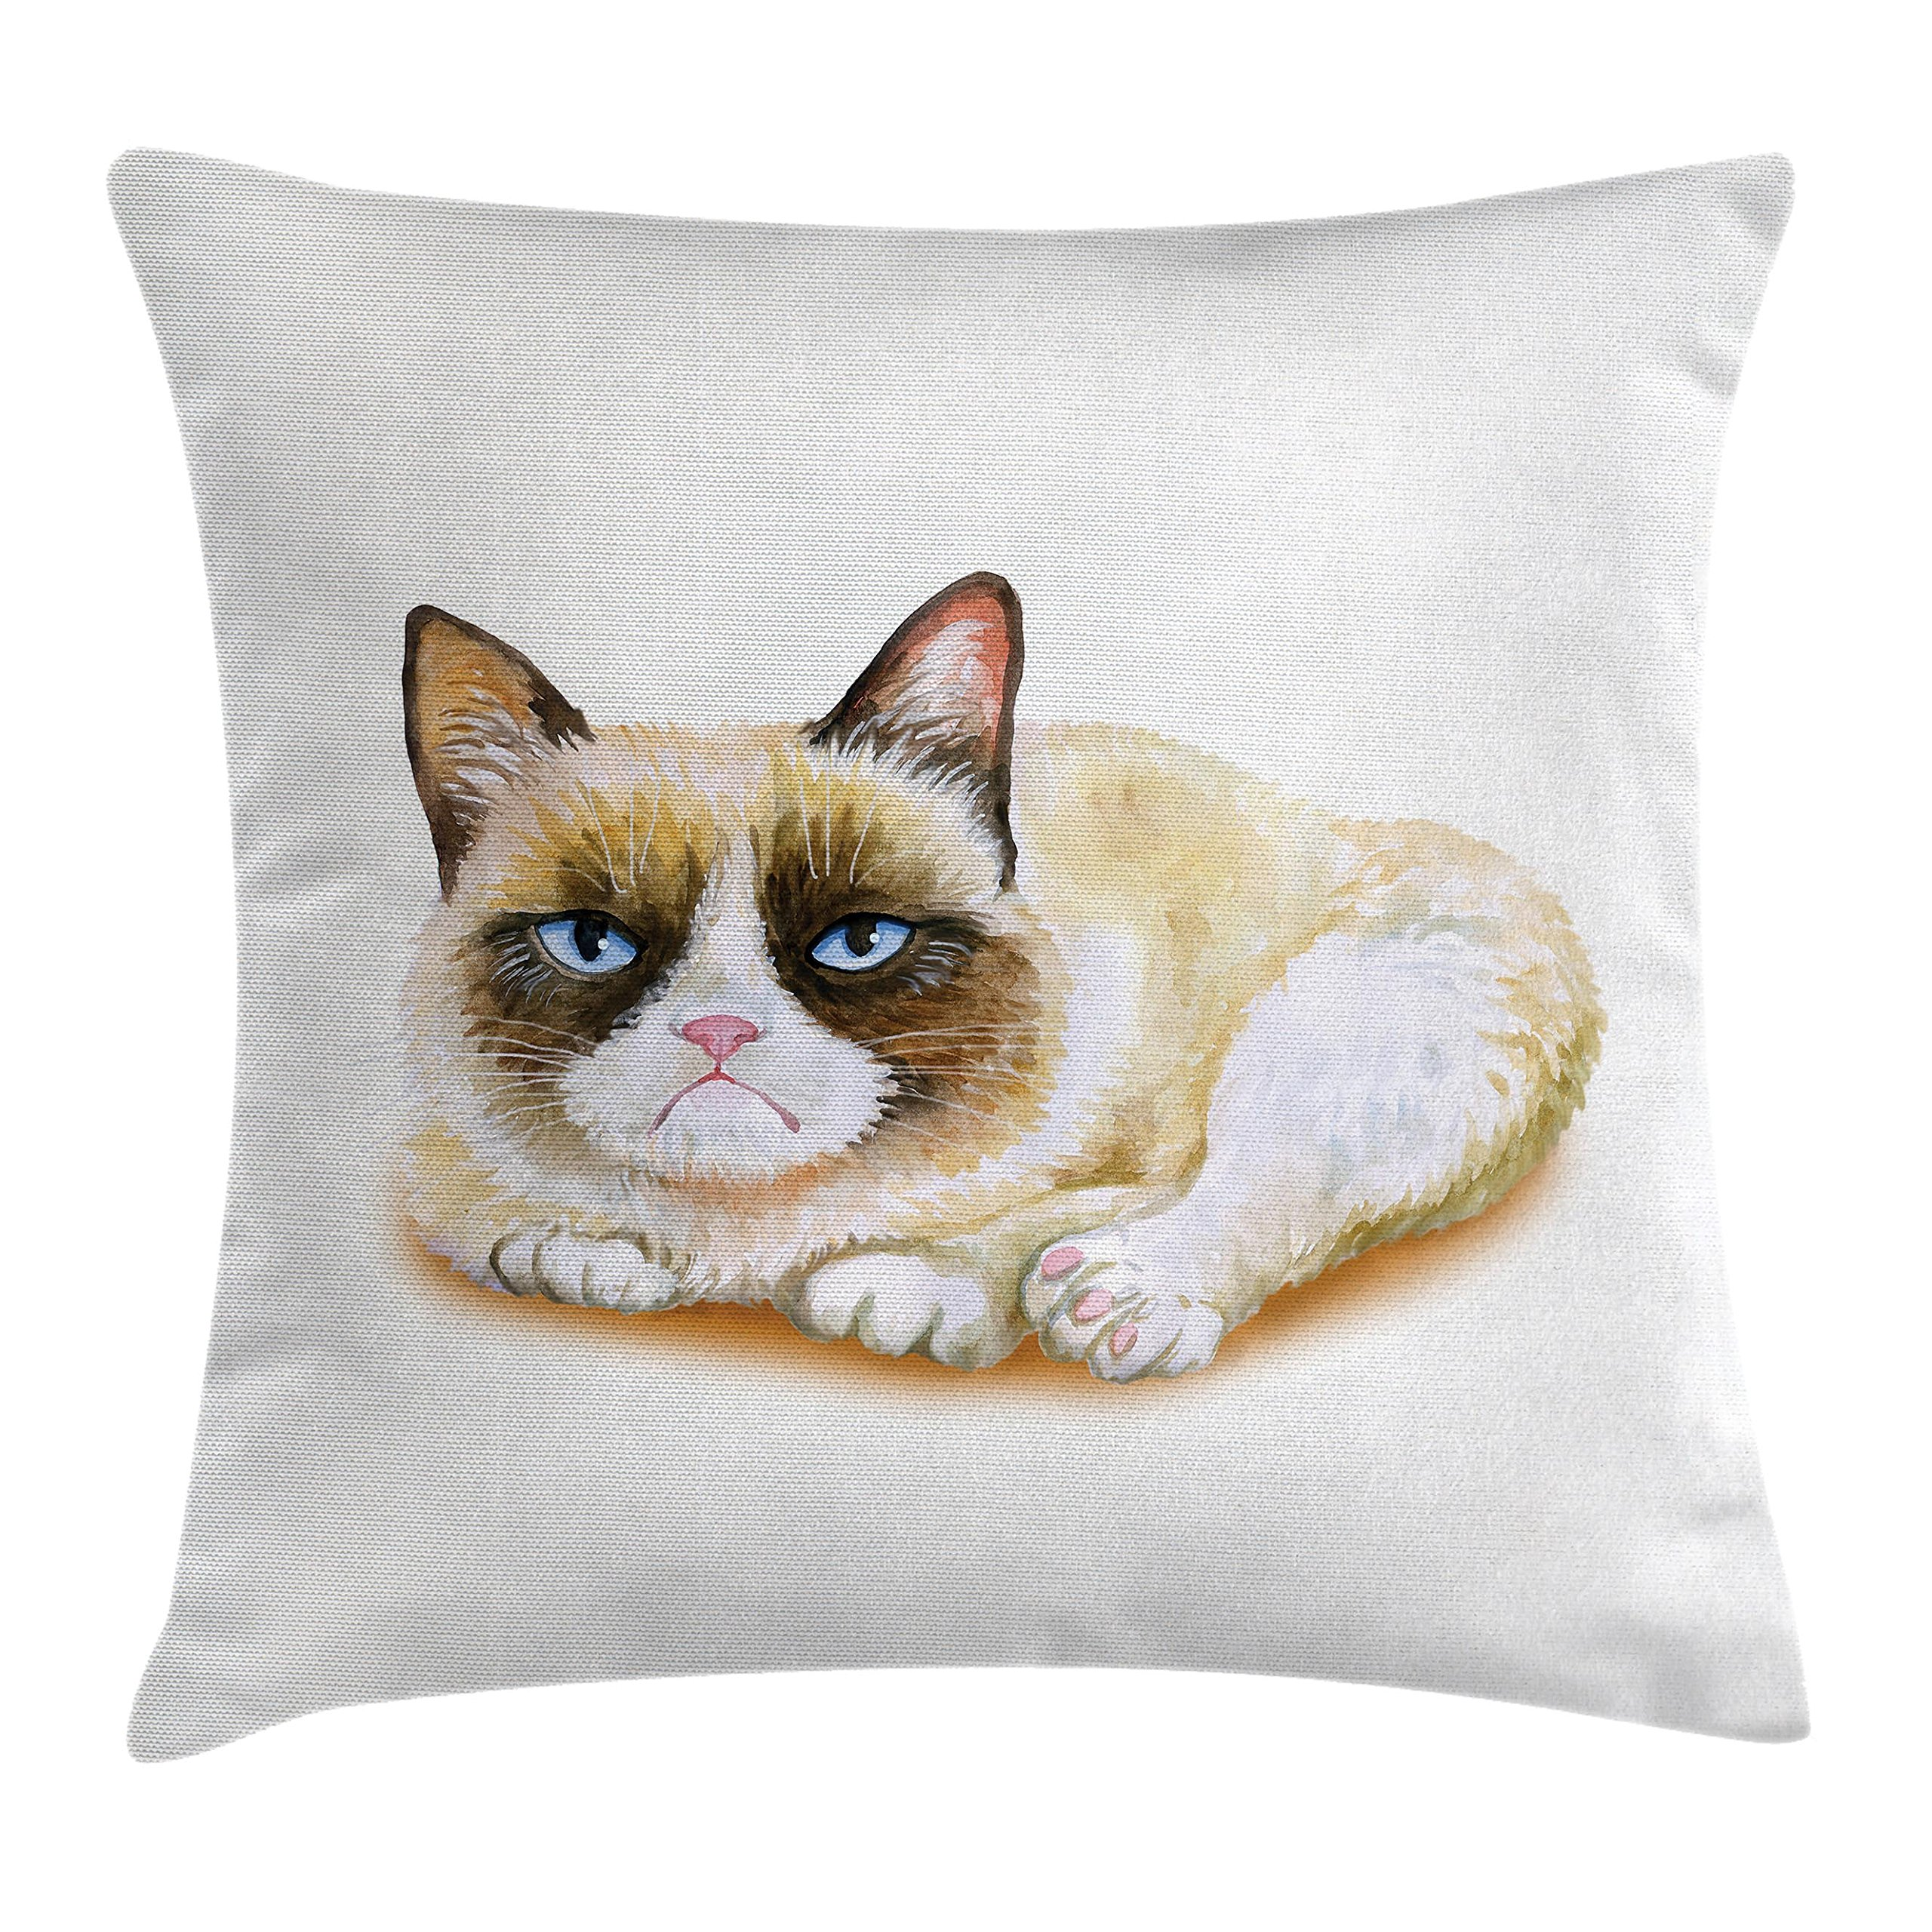 Ambesonne Animal Throw Pillow Cushion Cover, Grumpy Siamese Cat Angry Paws Asian Kitten Moody Feline Fluffy Love Art Print, Decorative Square Accent Pillow Case, 16 X 16 Inches, Brown and Beige by Ambesonne